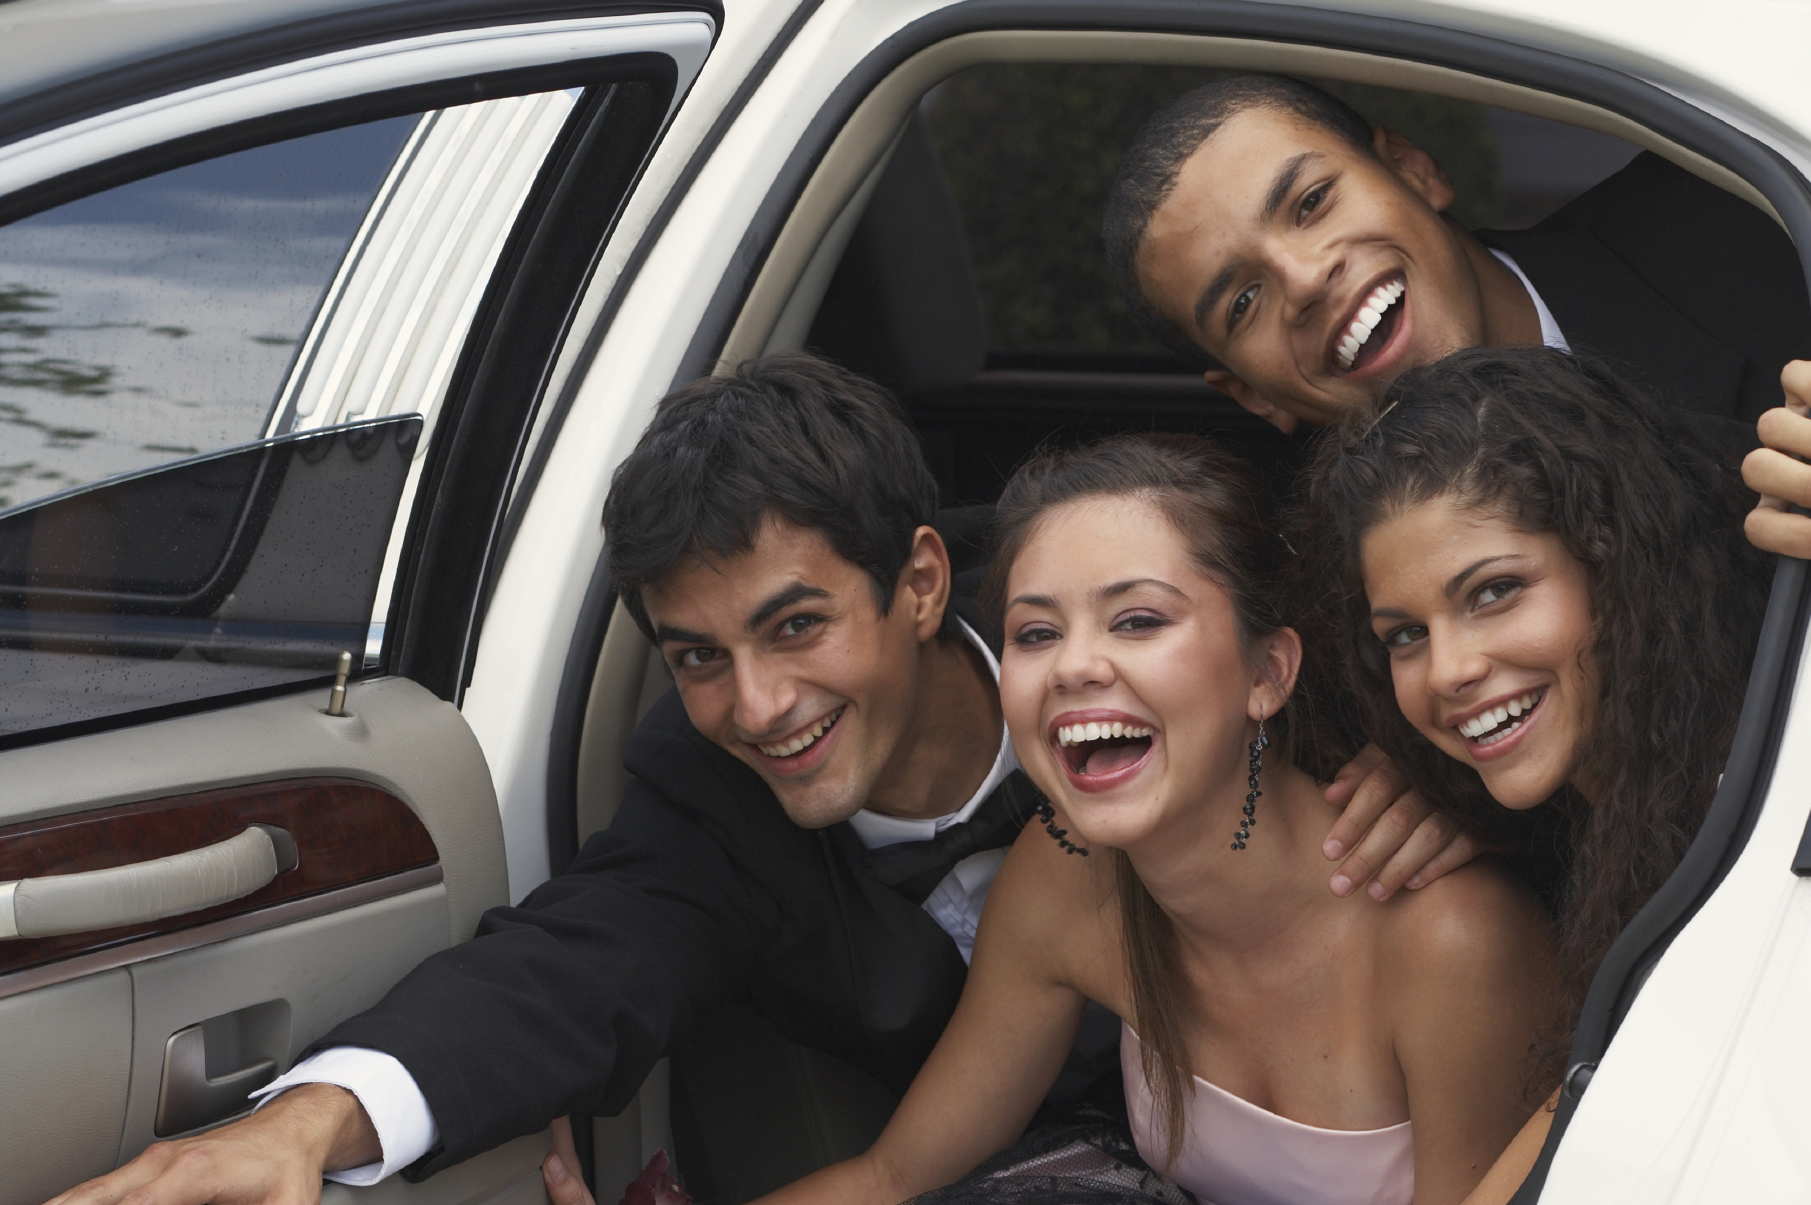 Arrive in style to your school formal in one of 2 B Chauffeured cars.